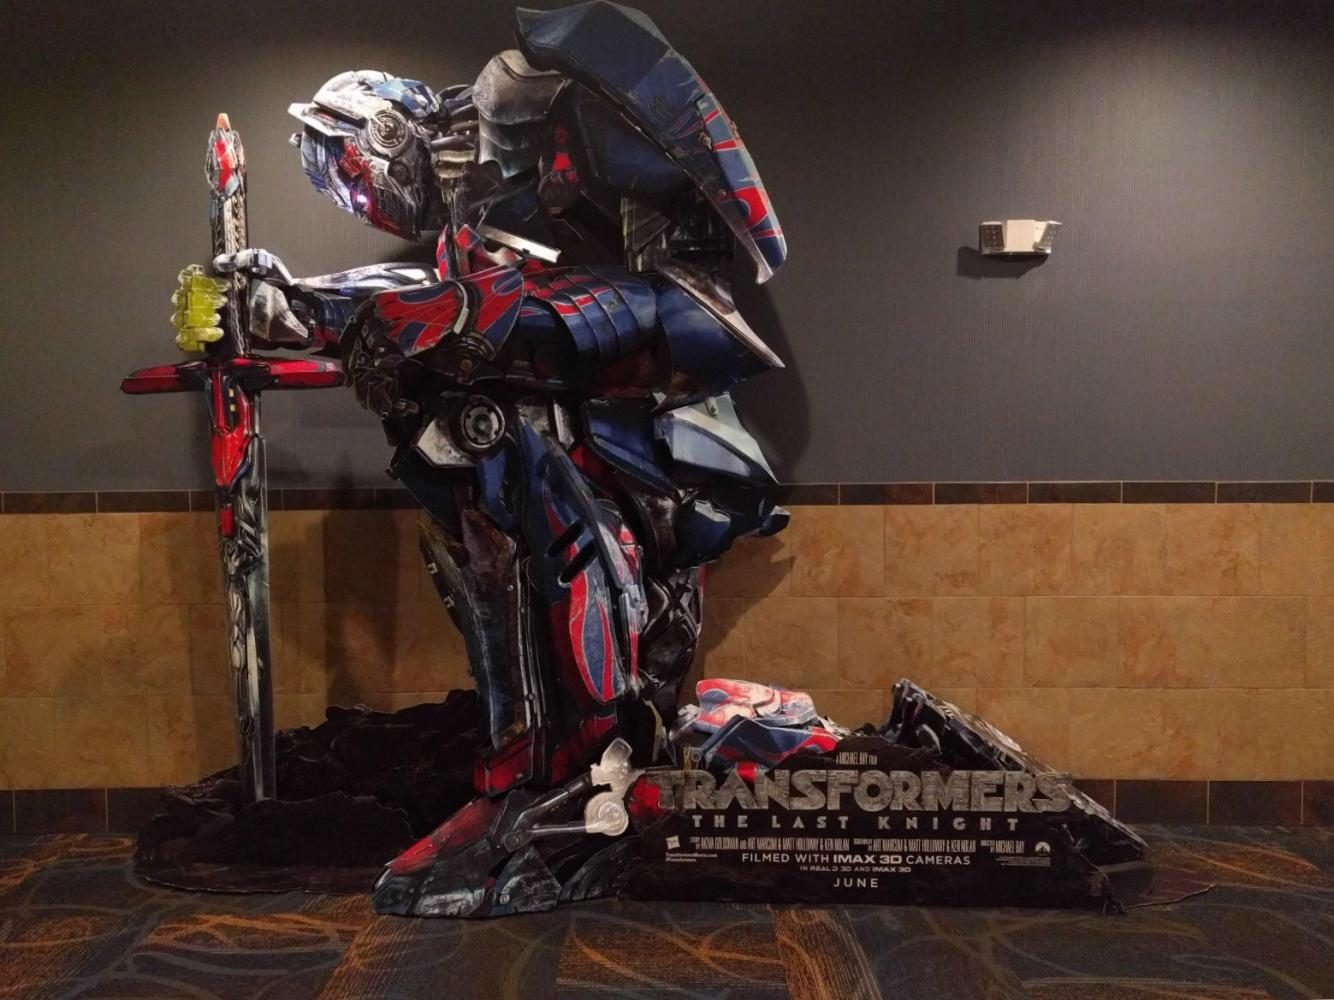 Transformers: The Last Knight - A Spellbinding Experience